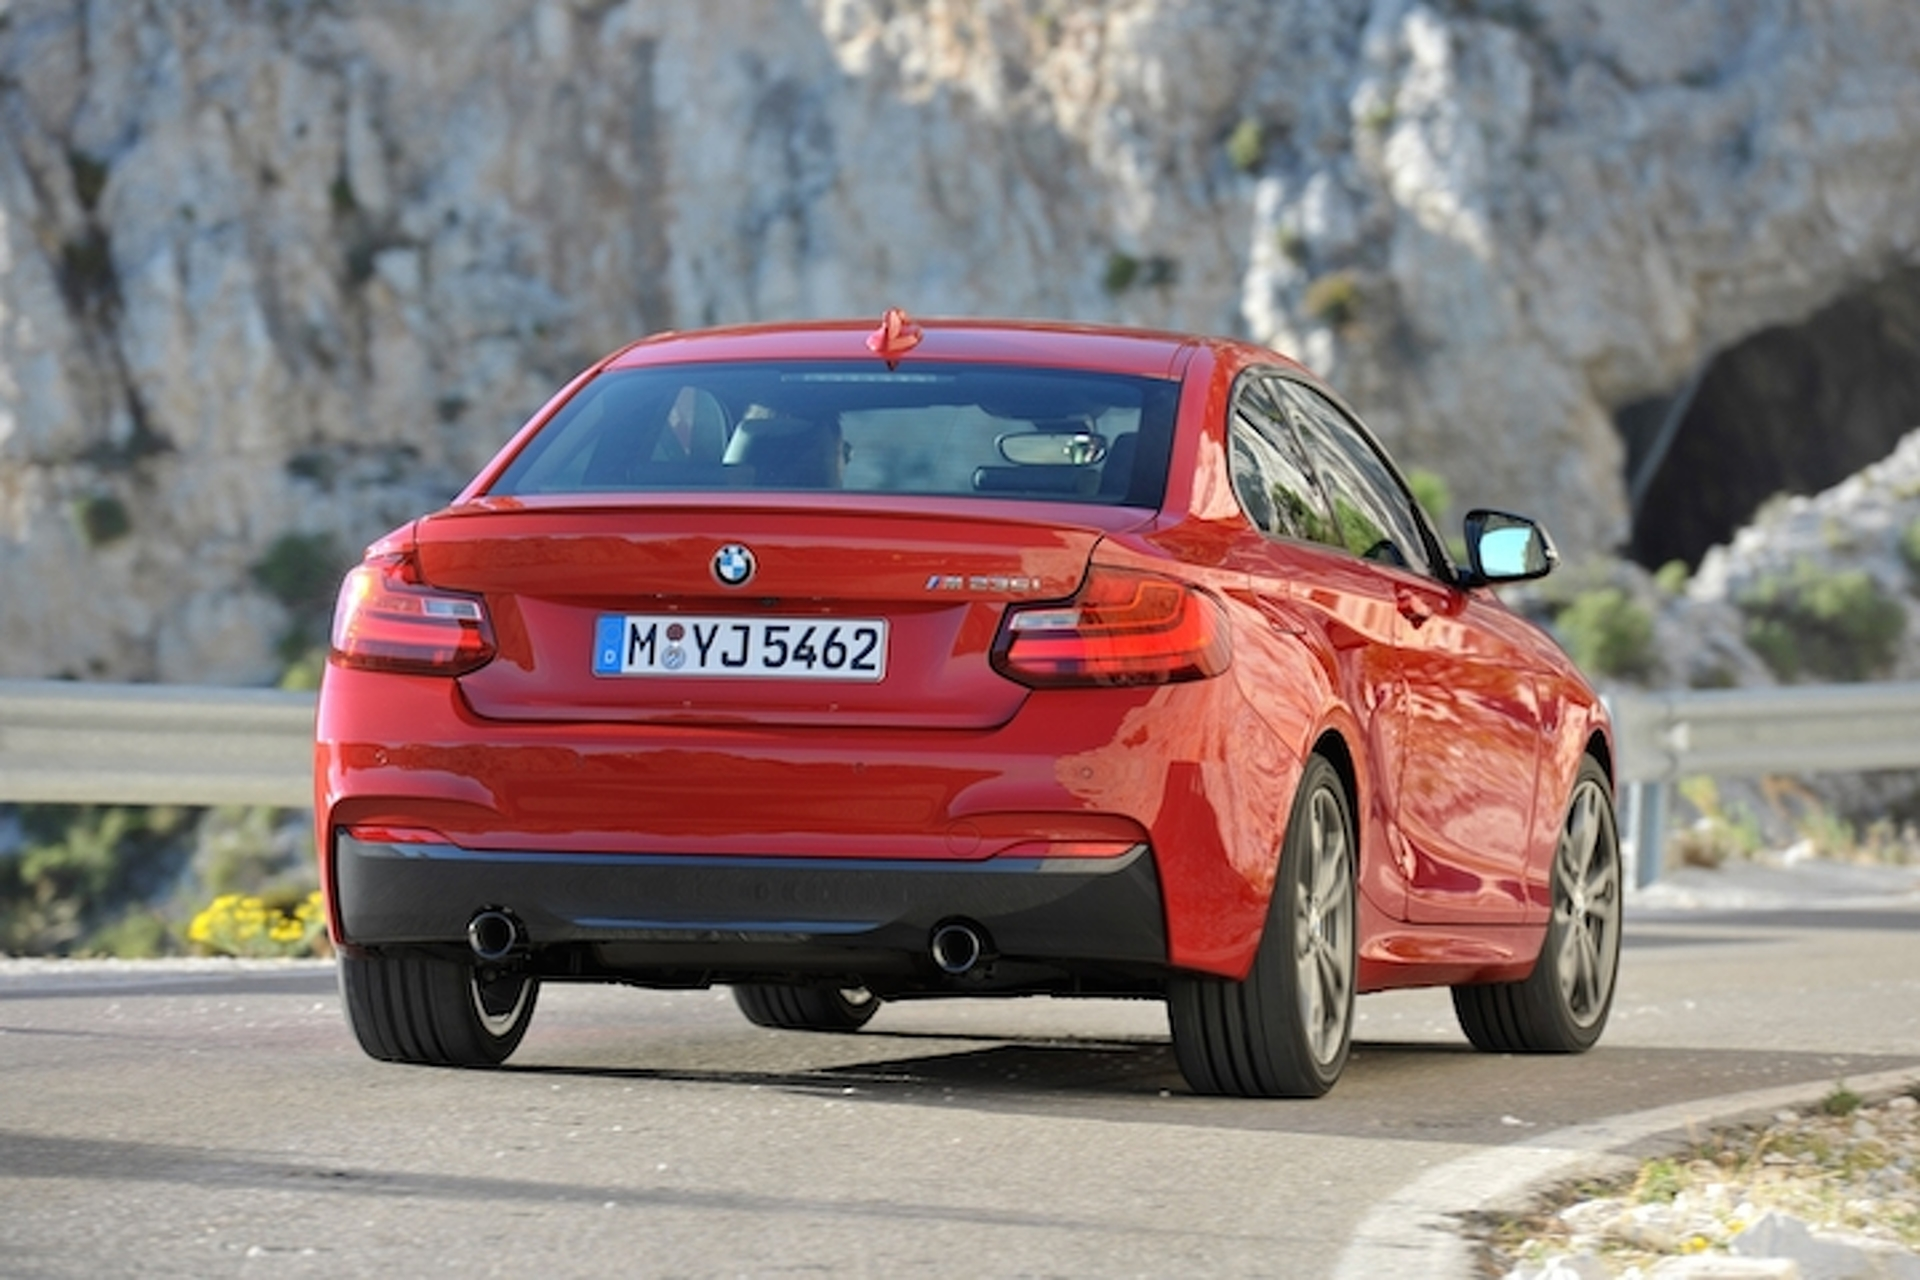 BMW Reportedly Working On M2 With 375 Horsepower